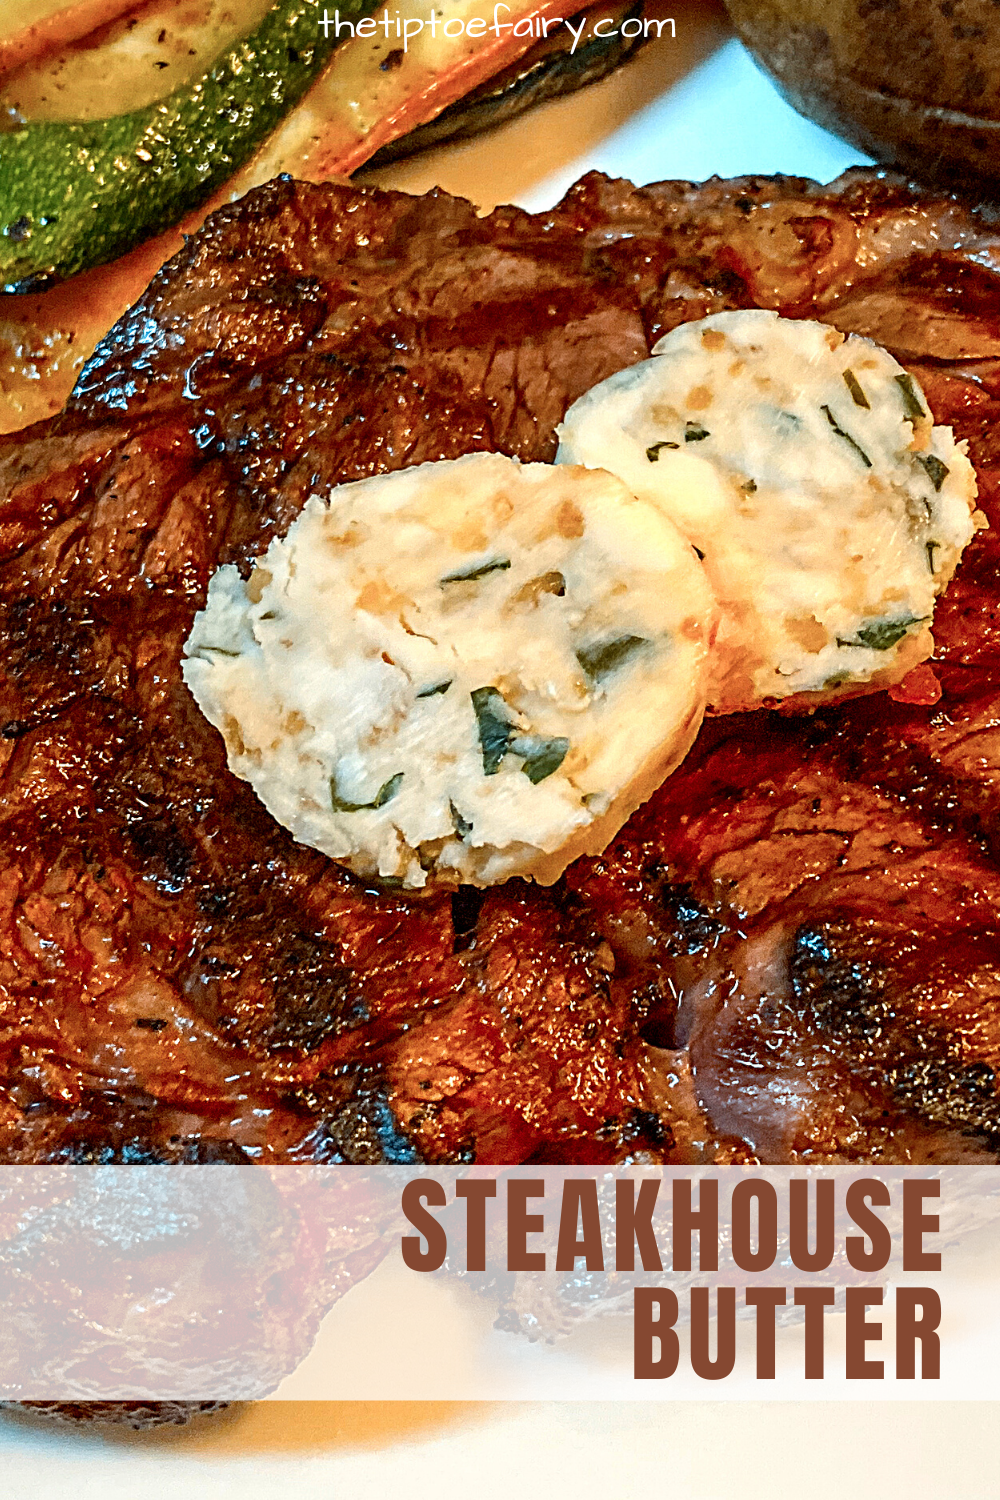 Close up view of a grilled ribeye steak with two slices of steakhouse butter on top of it.